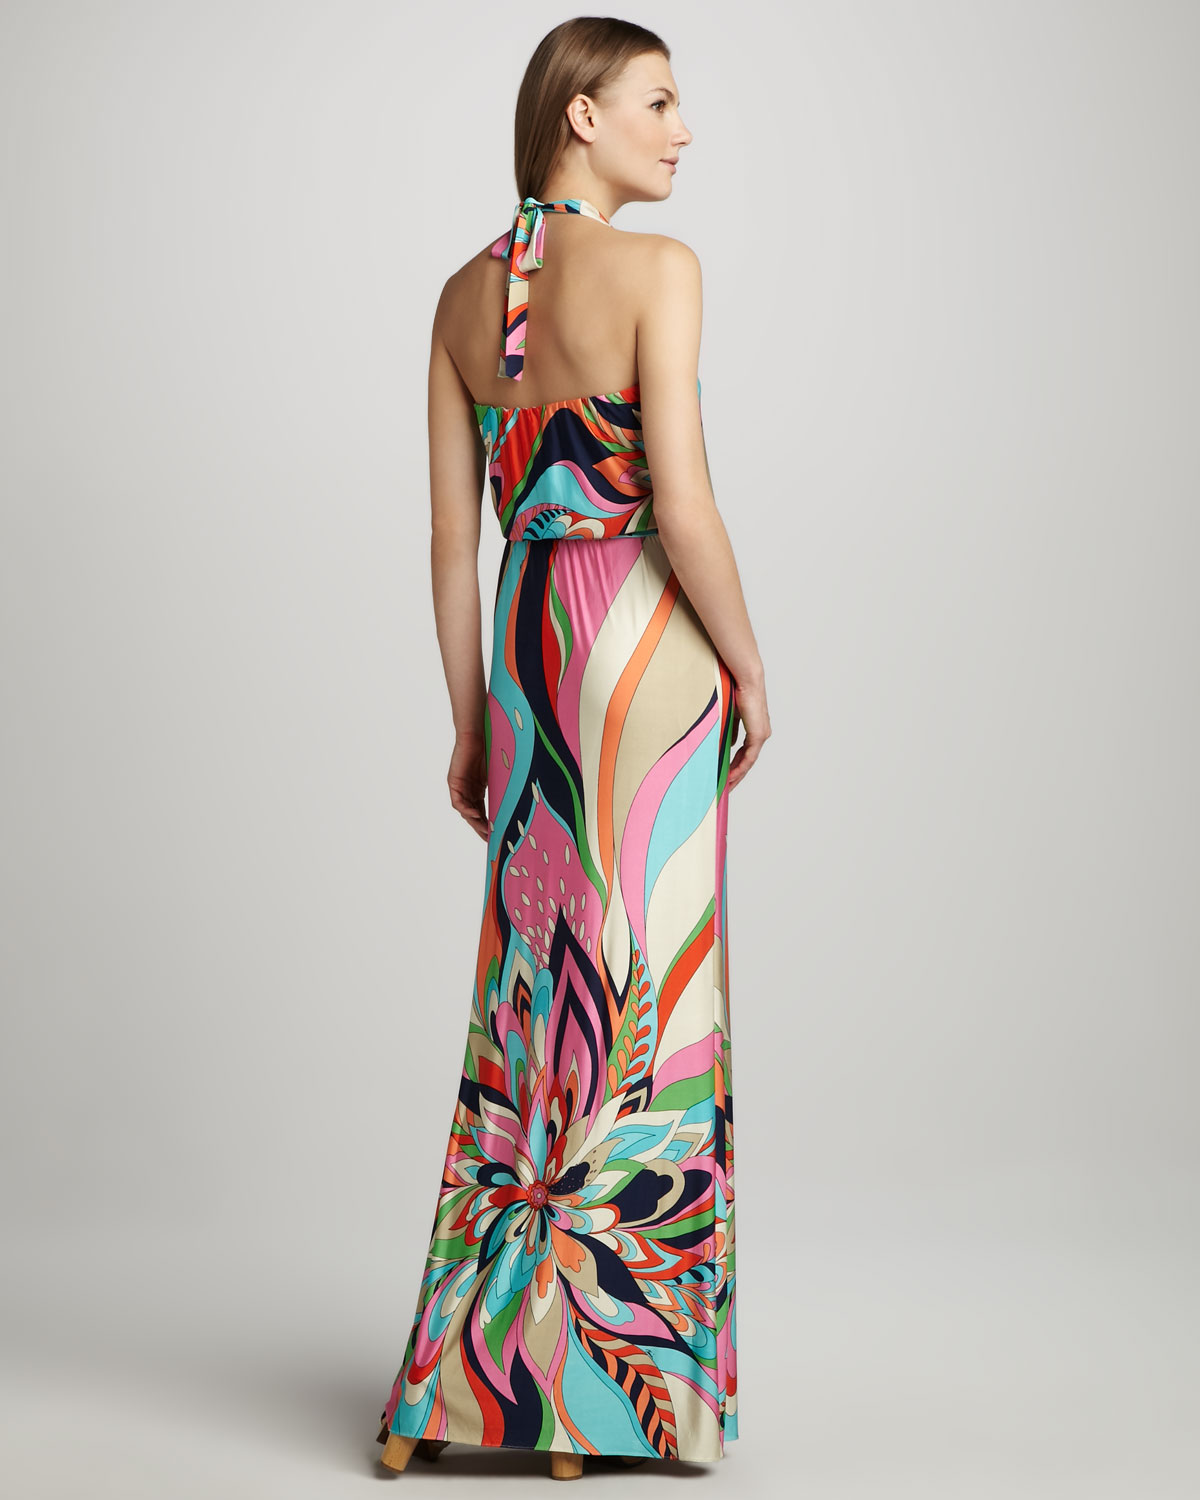 4abdbd64c91 Trina Turk Surfside Printed Halter Maxi Dress - Lyst